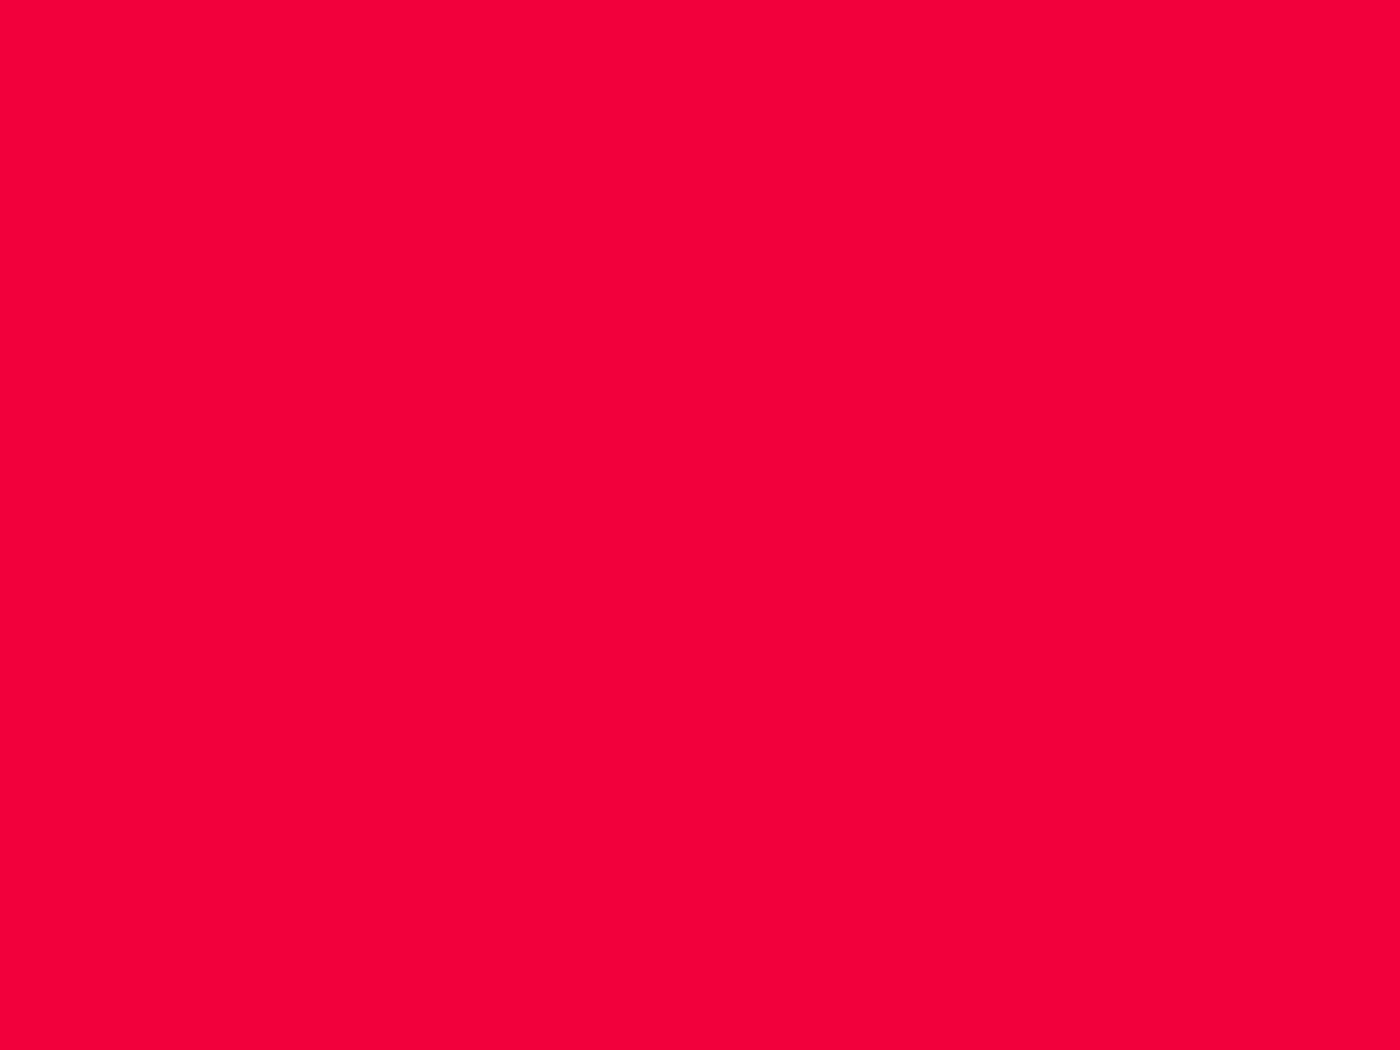 1400x1050 Red Munsell Solid Color Background